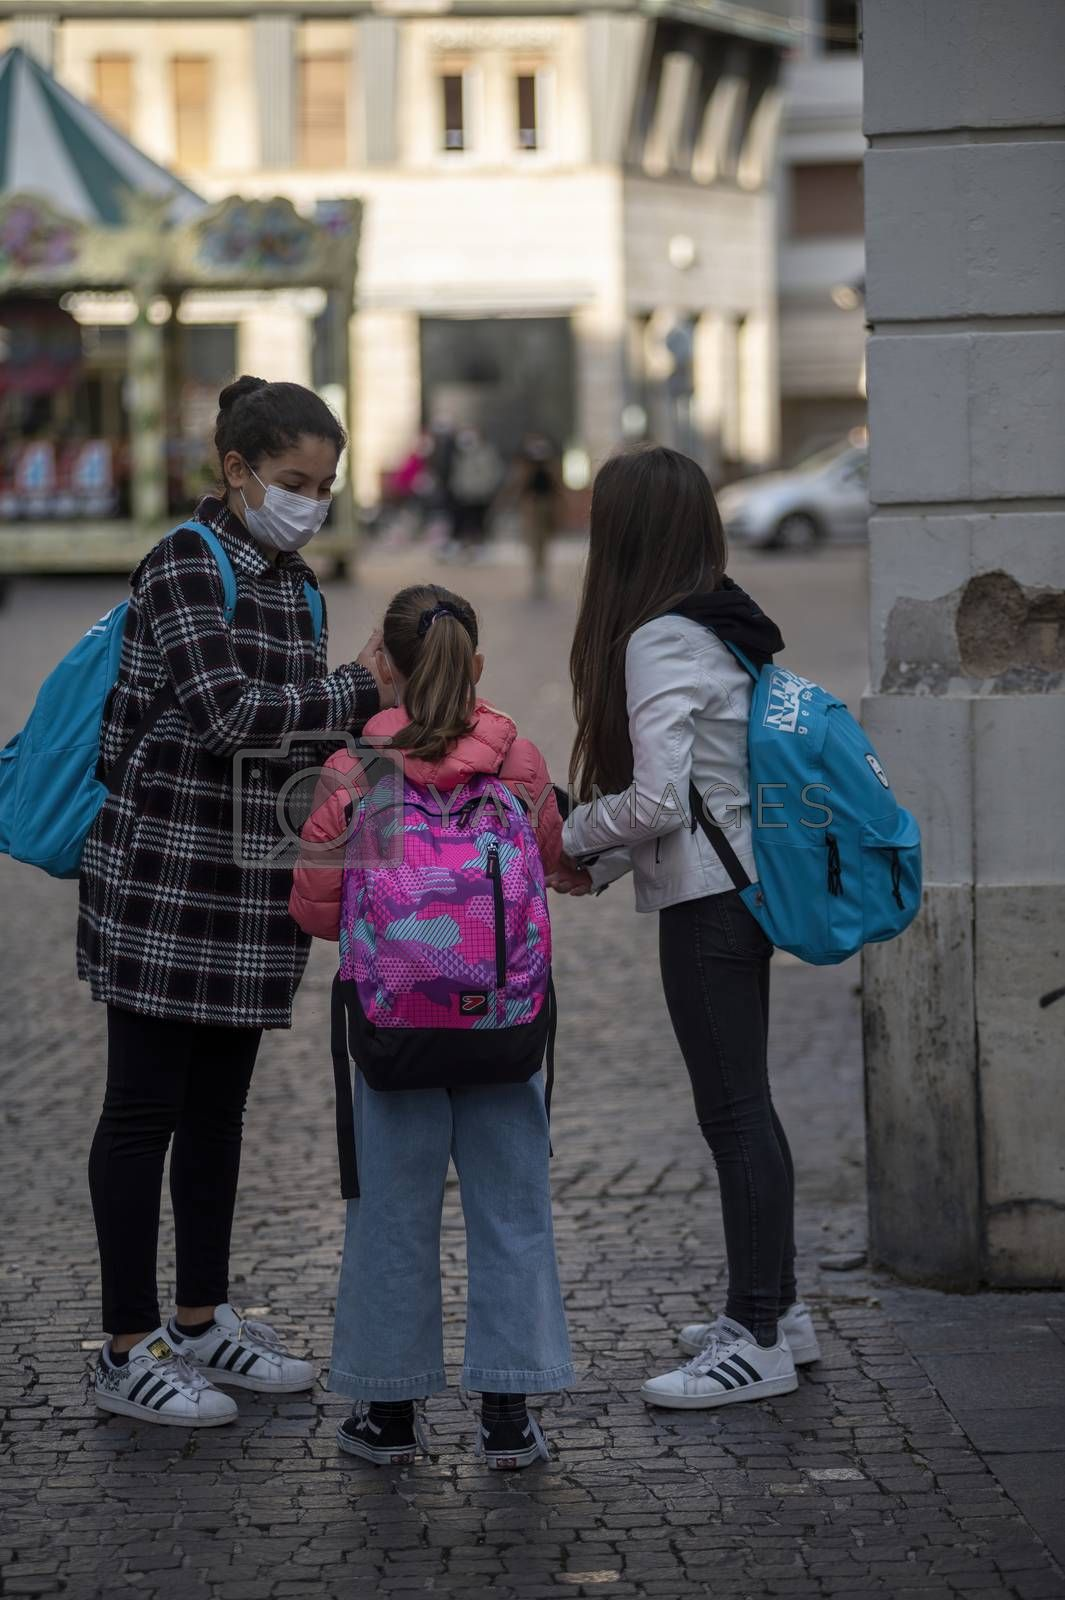 terni,italy october 26 2020:children who go to school with backpack and medical mask cause covid 19